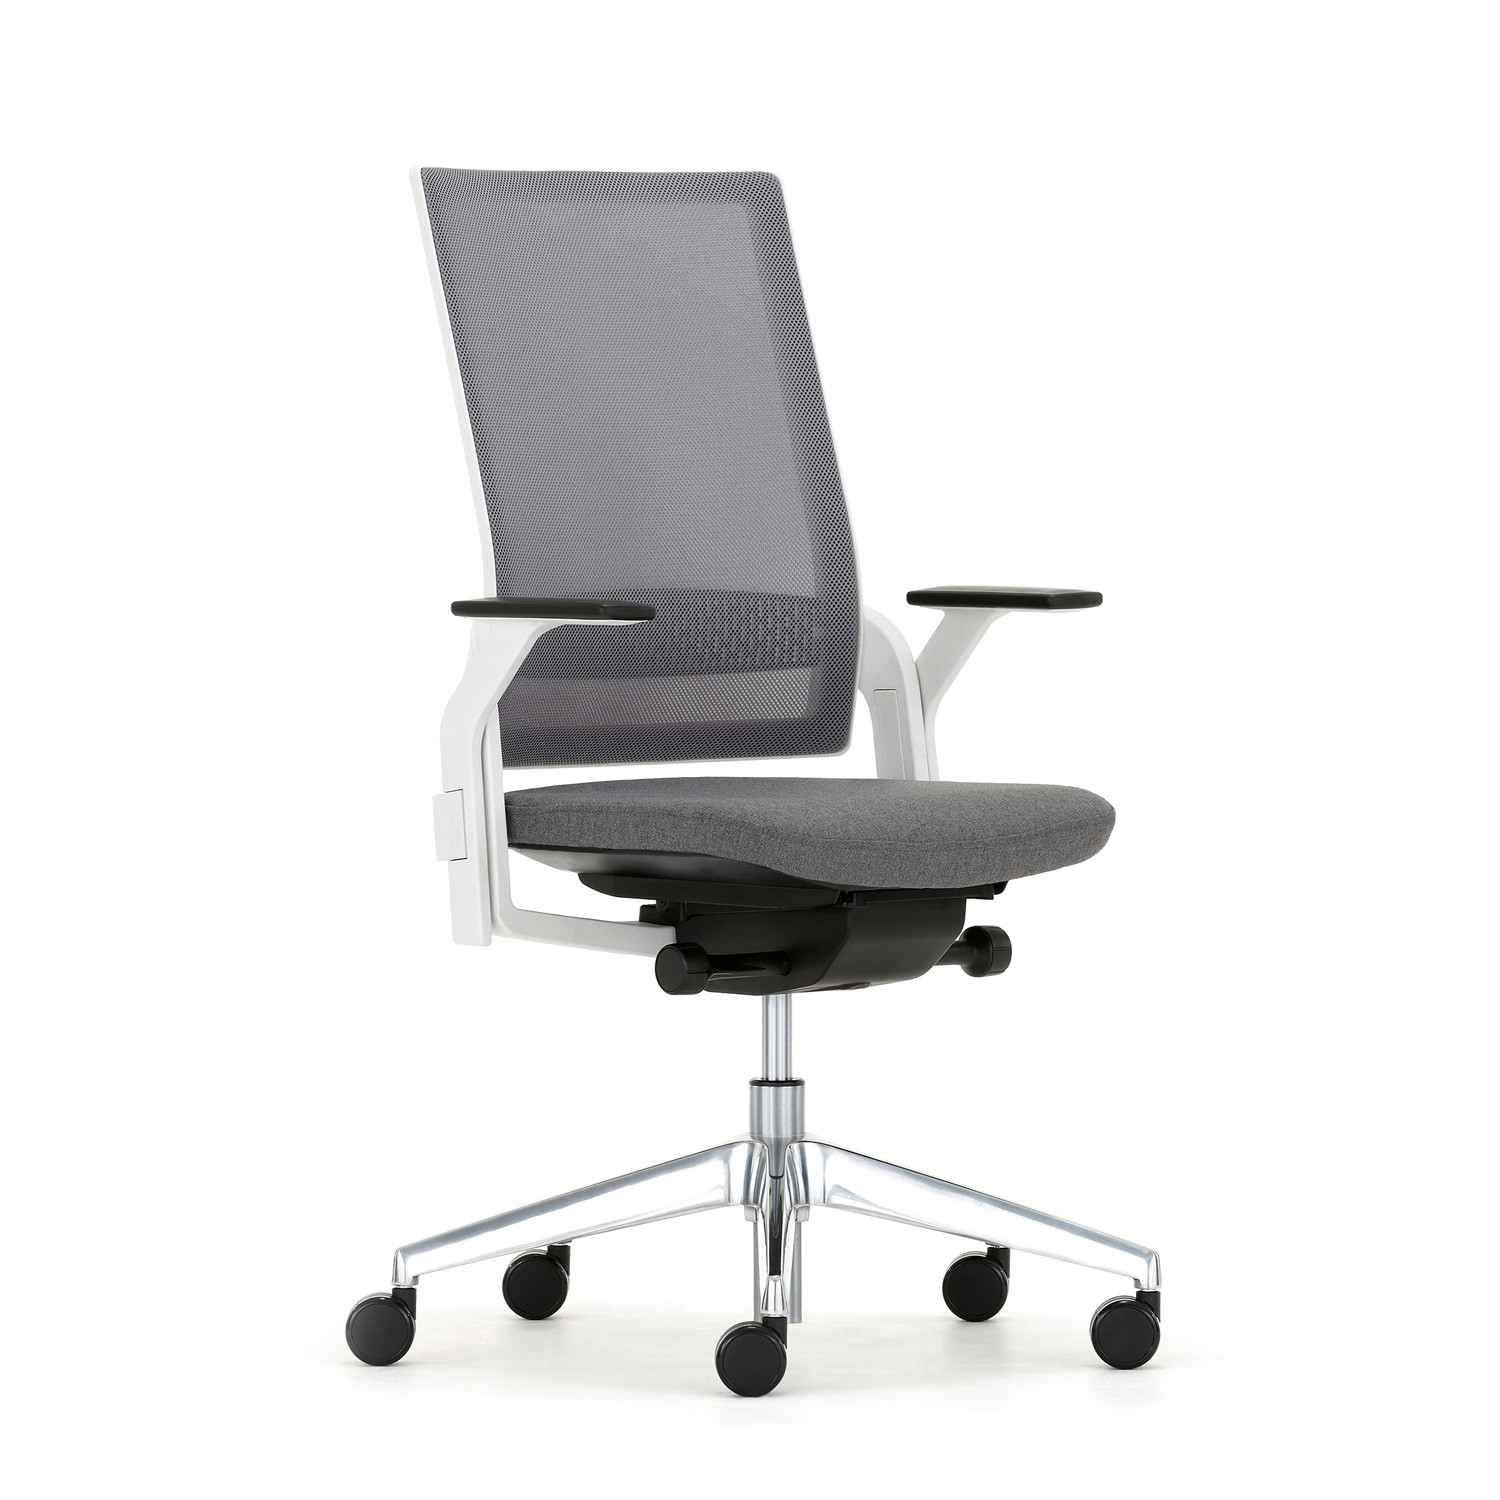 Ecoflex Office Chair by Senator